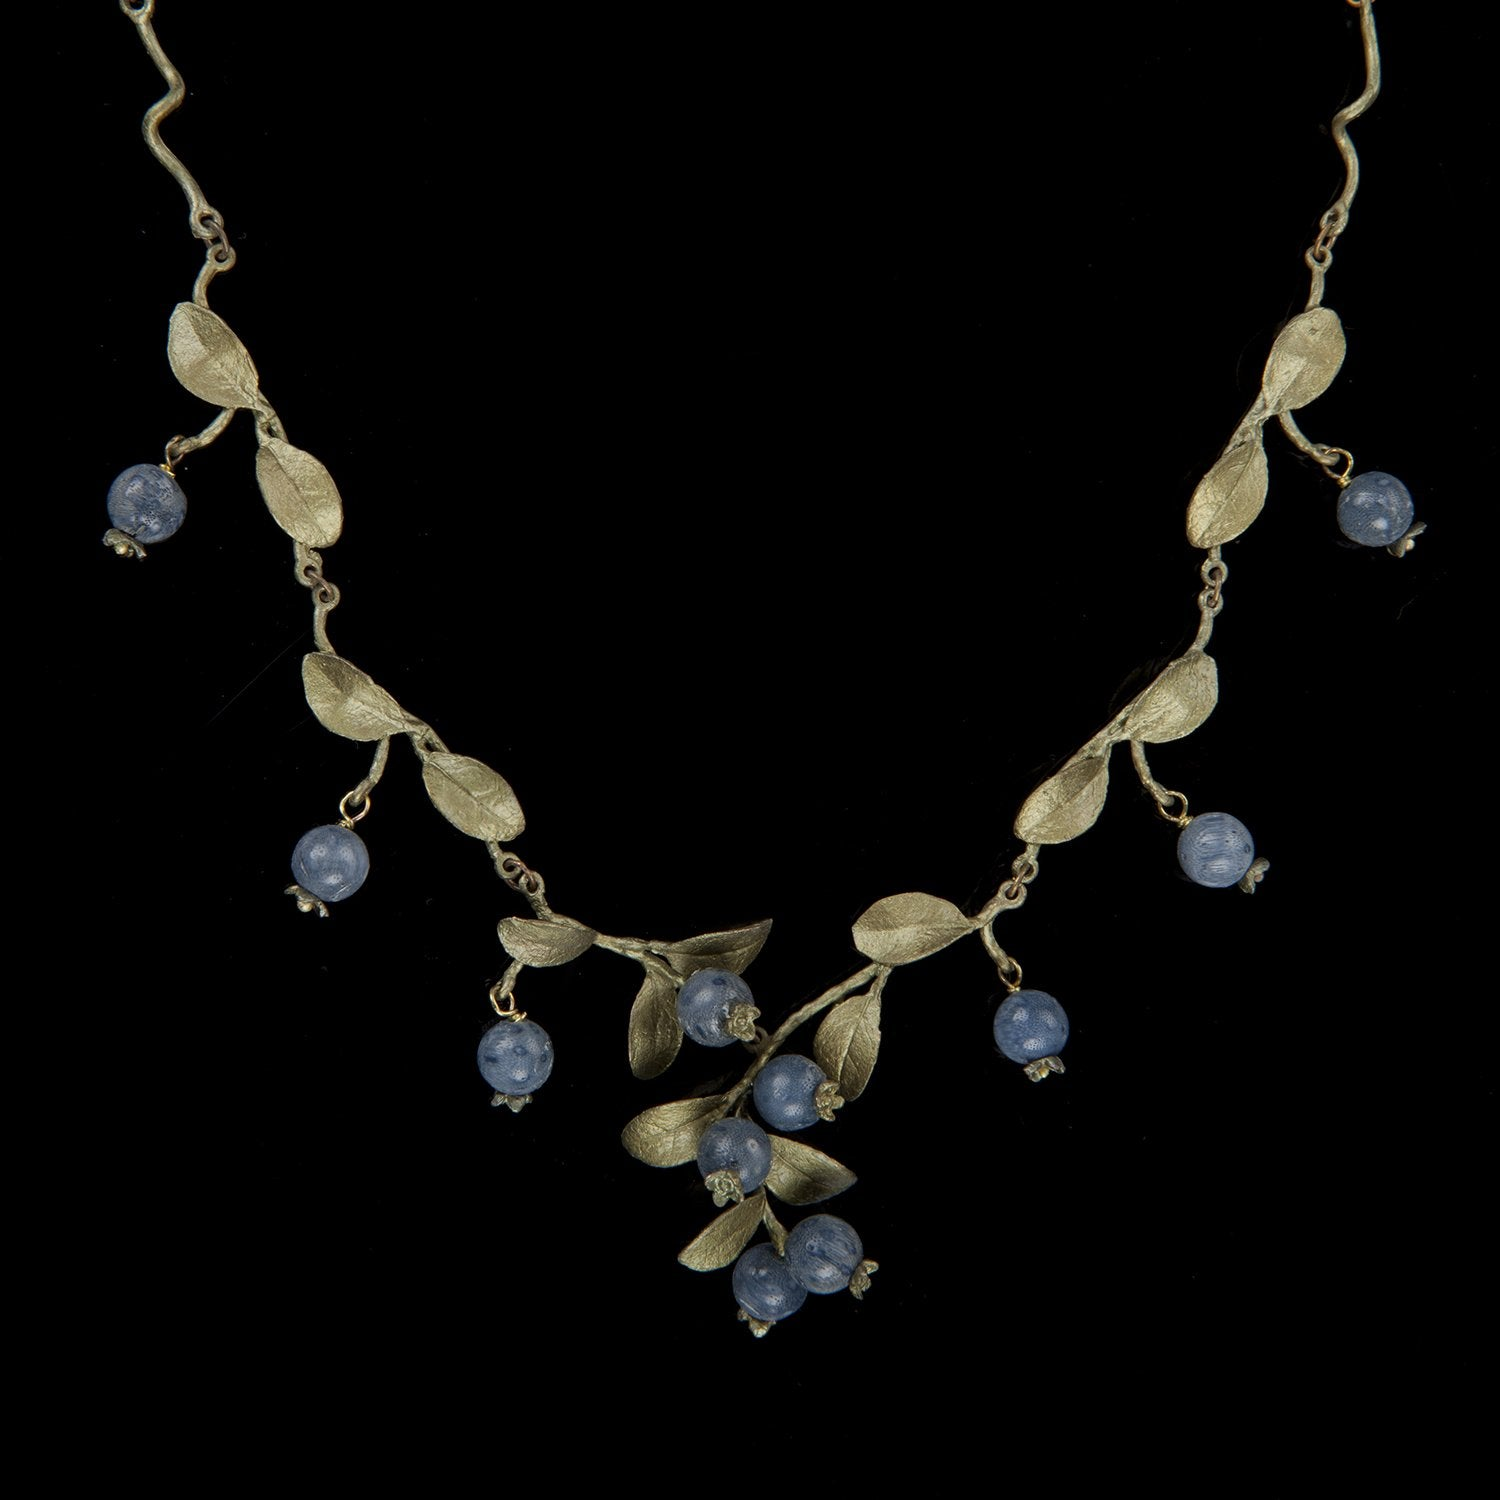 Blueberry Necklace - Twigs